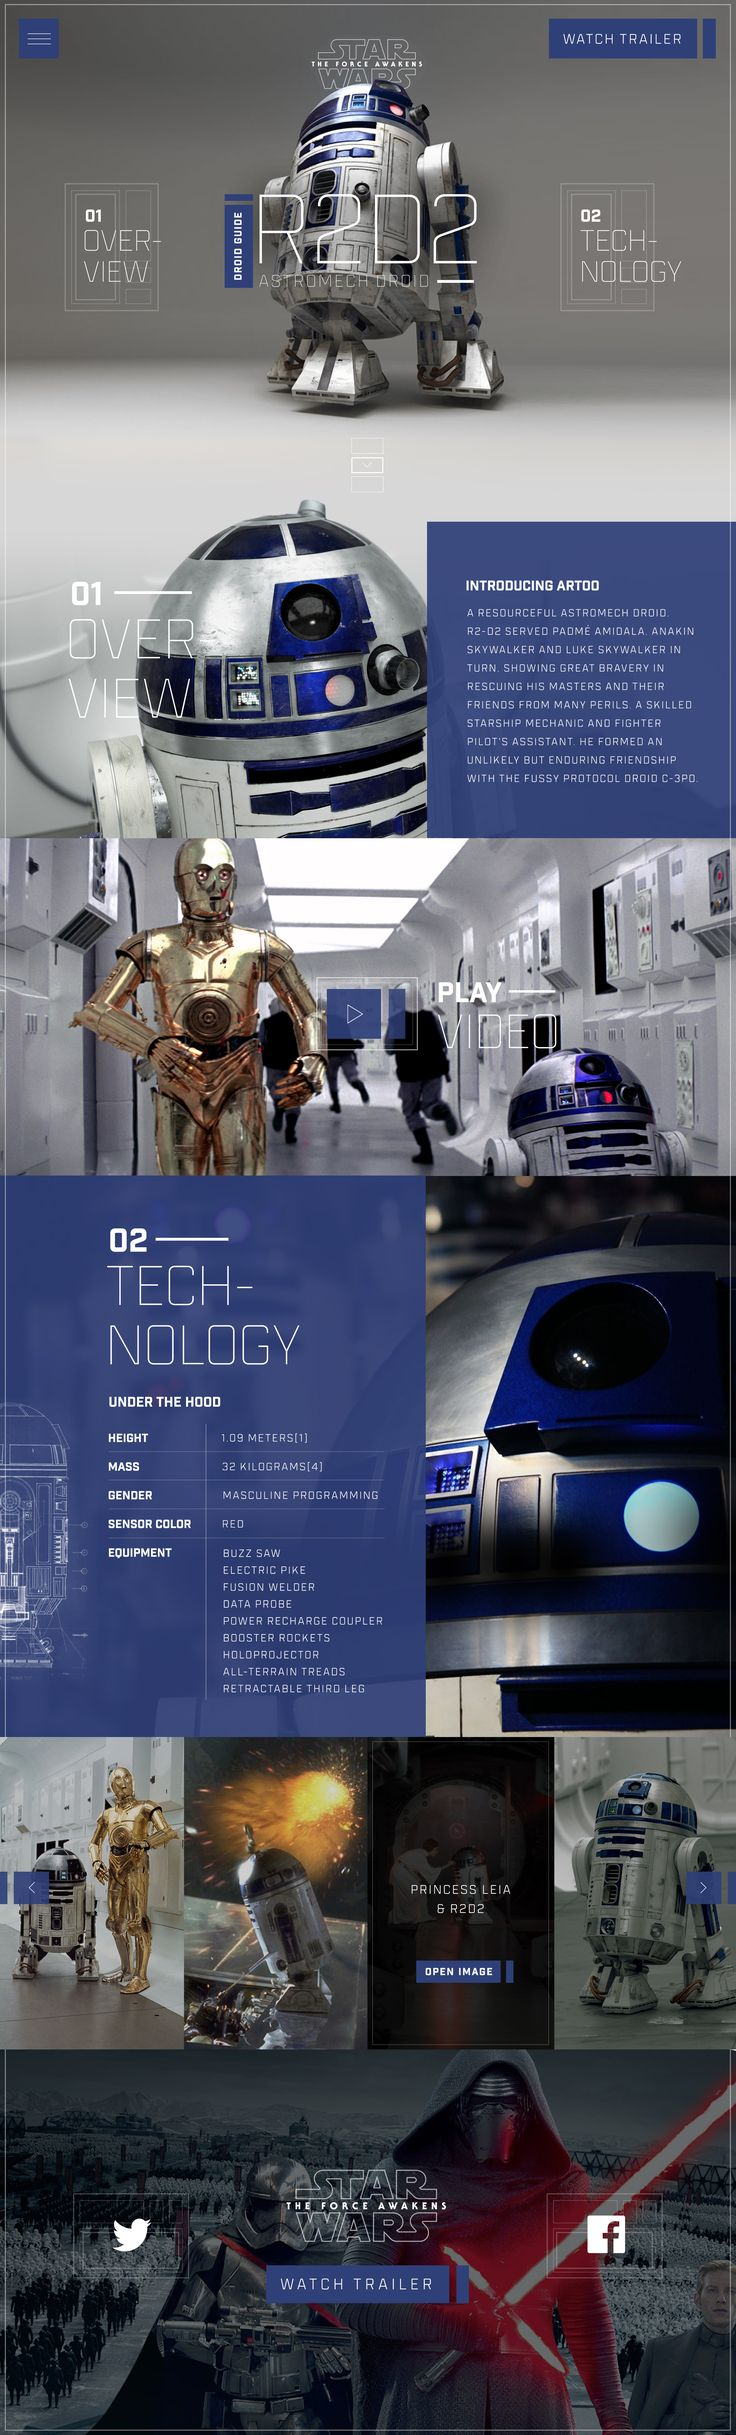 Star Wars 'The Force Awakens' R2D2 Astromech Droid Overview by Nathan Riley